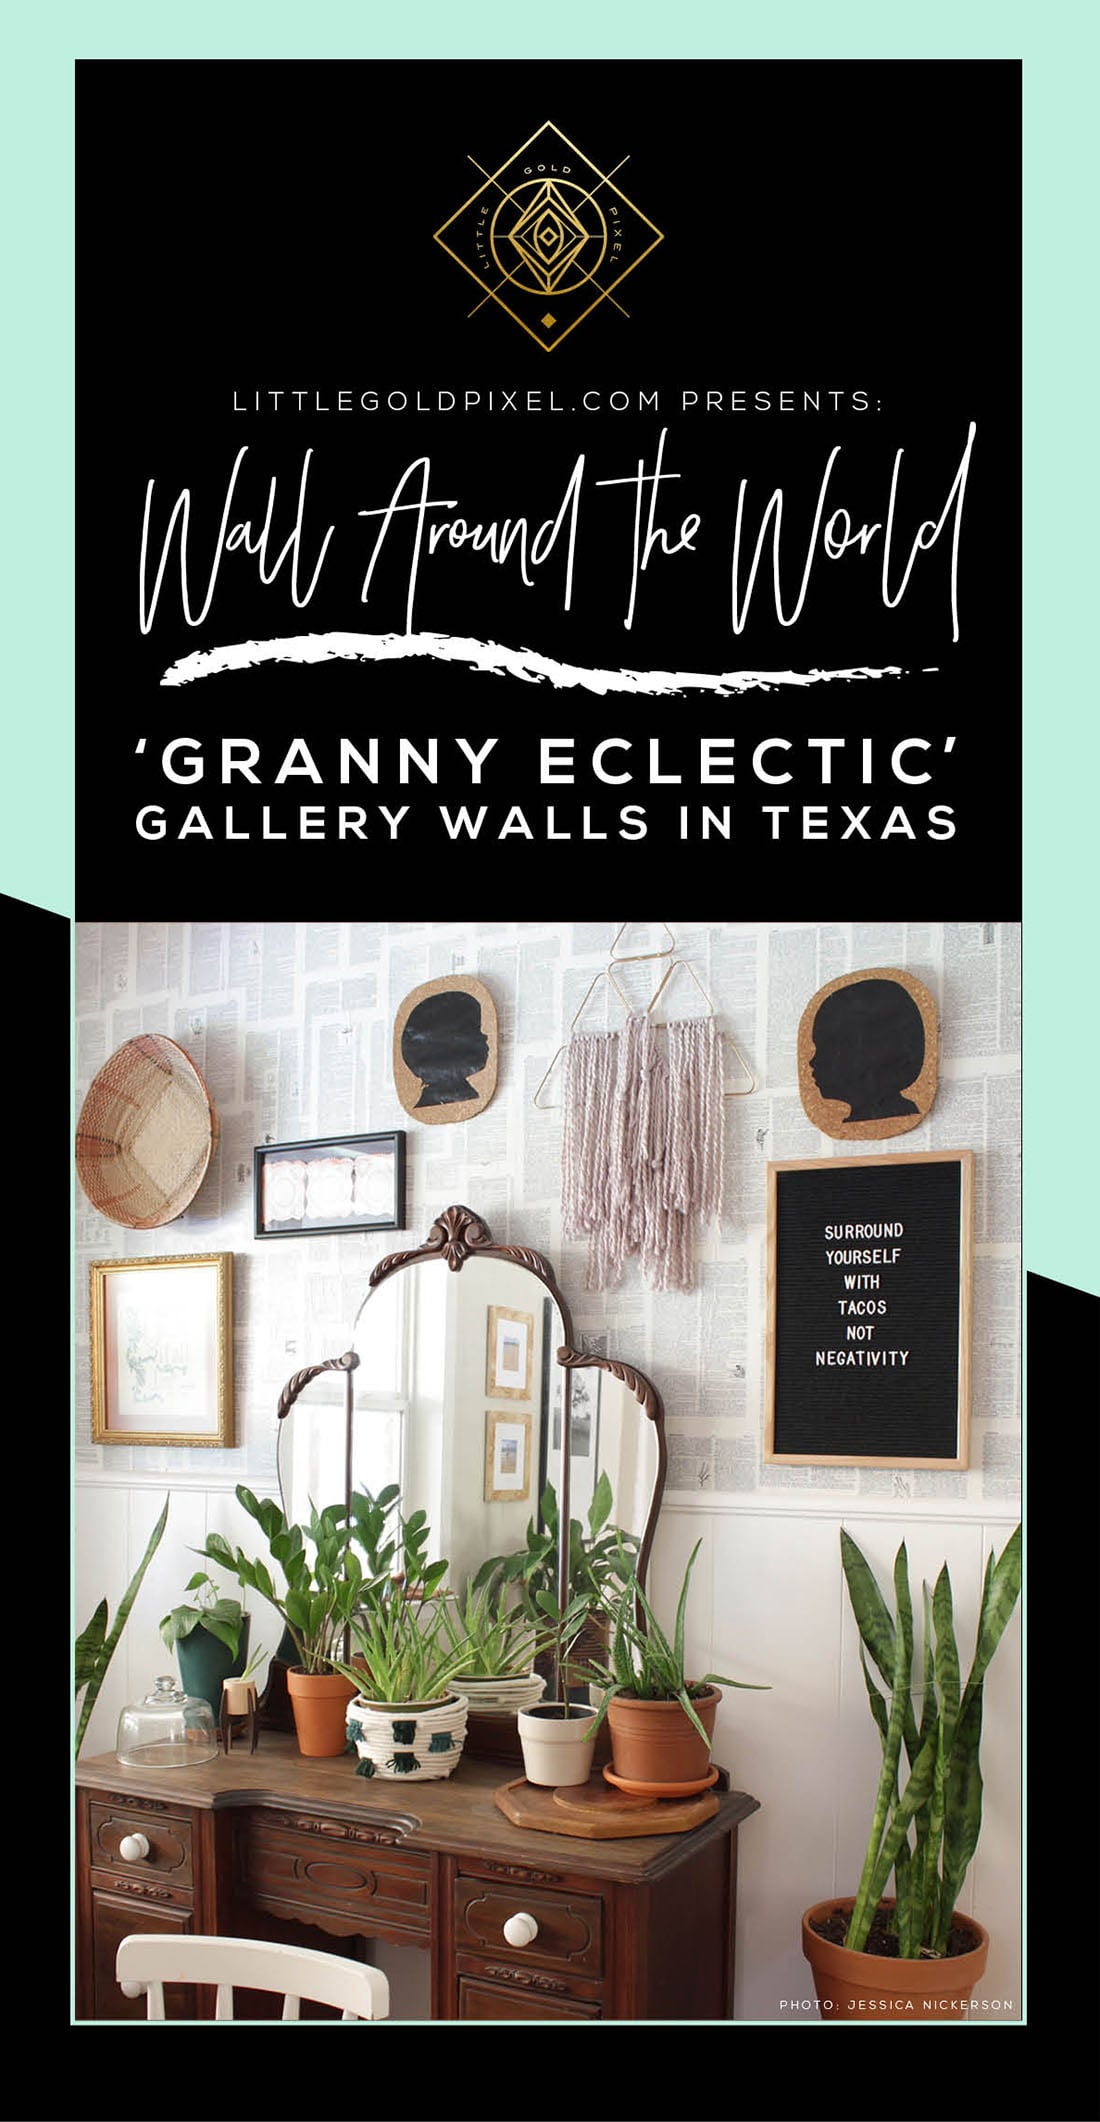 Wall Around the World: A Gallery Wall Series by Little Gold Pixel •Part 1: Granny Eclectic Gallery Walls in Texas • All photos ©Jessica Nickerson